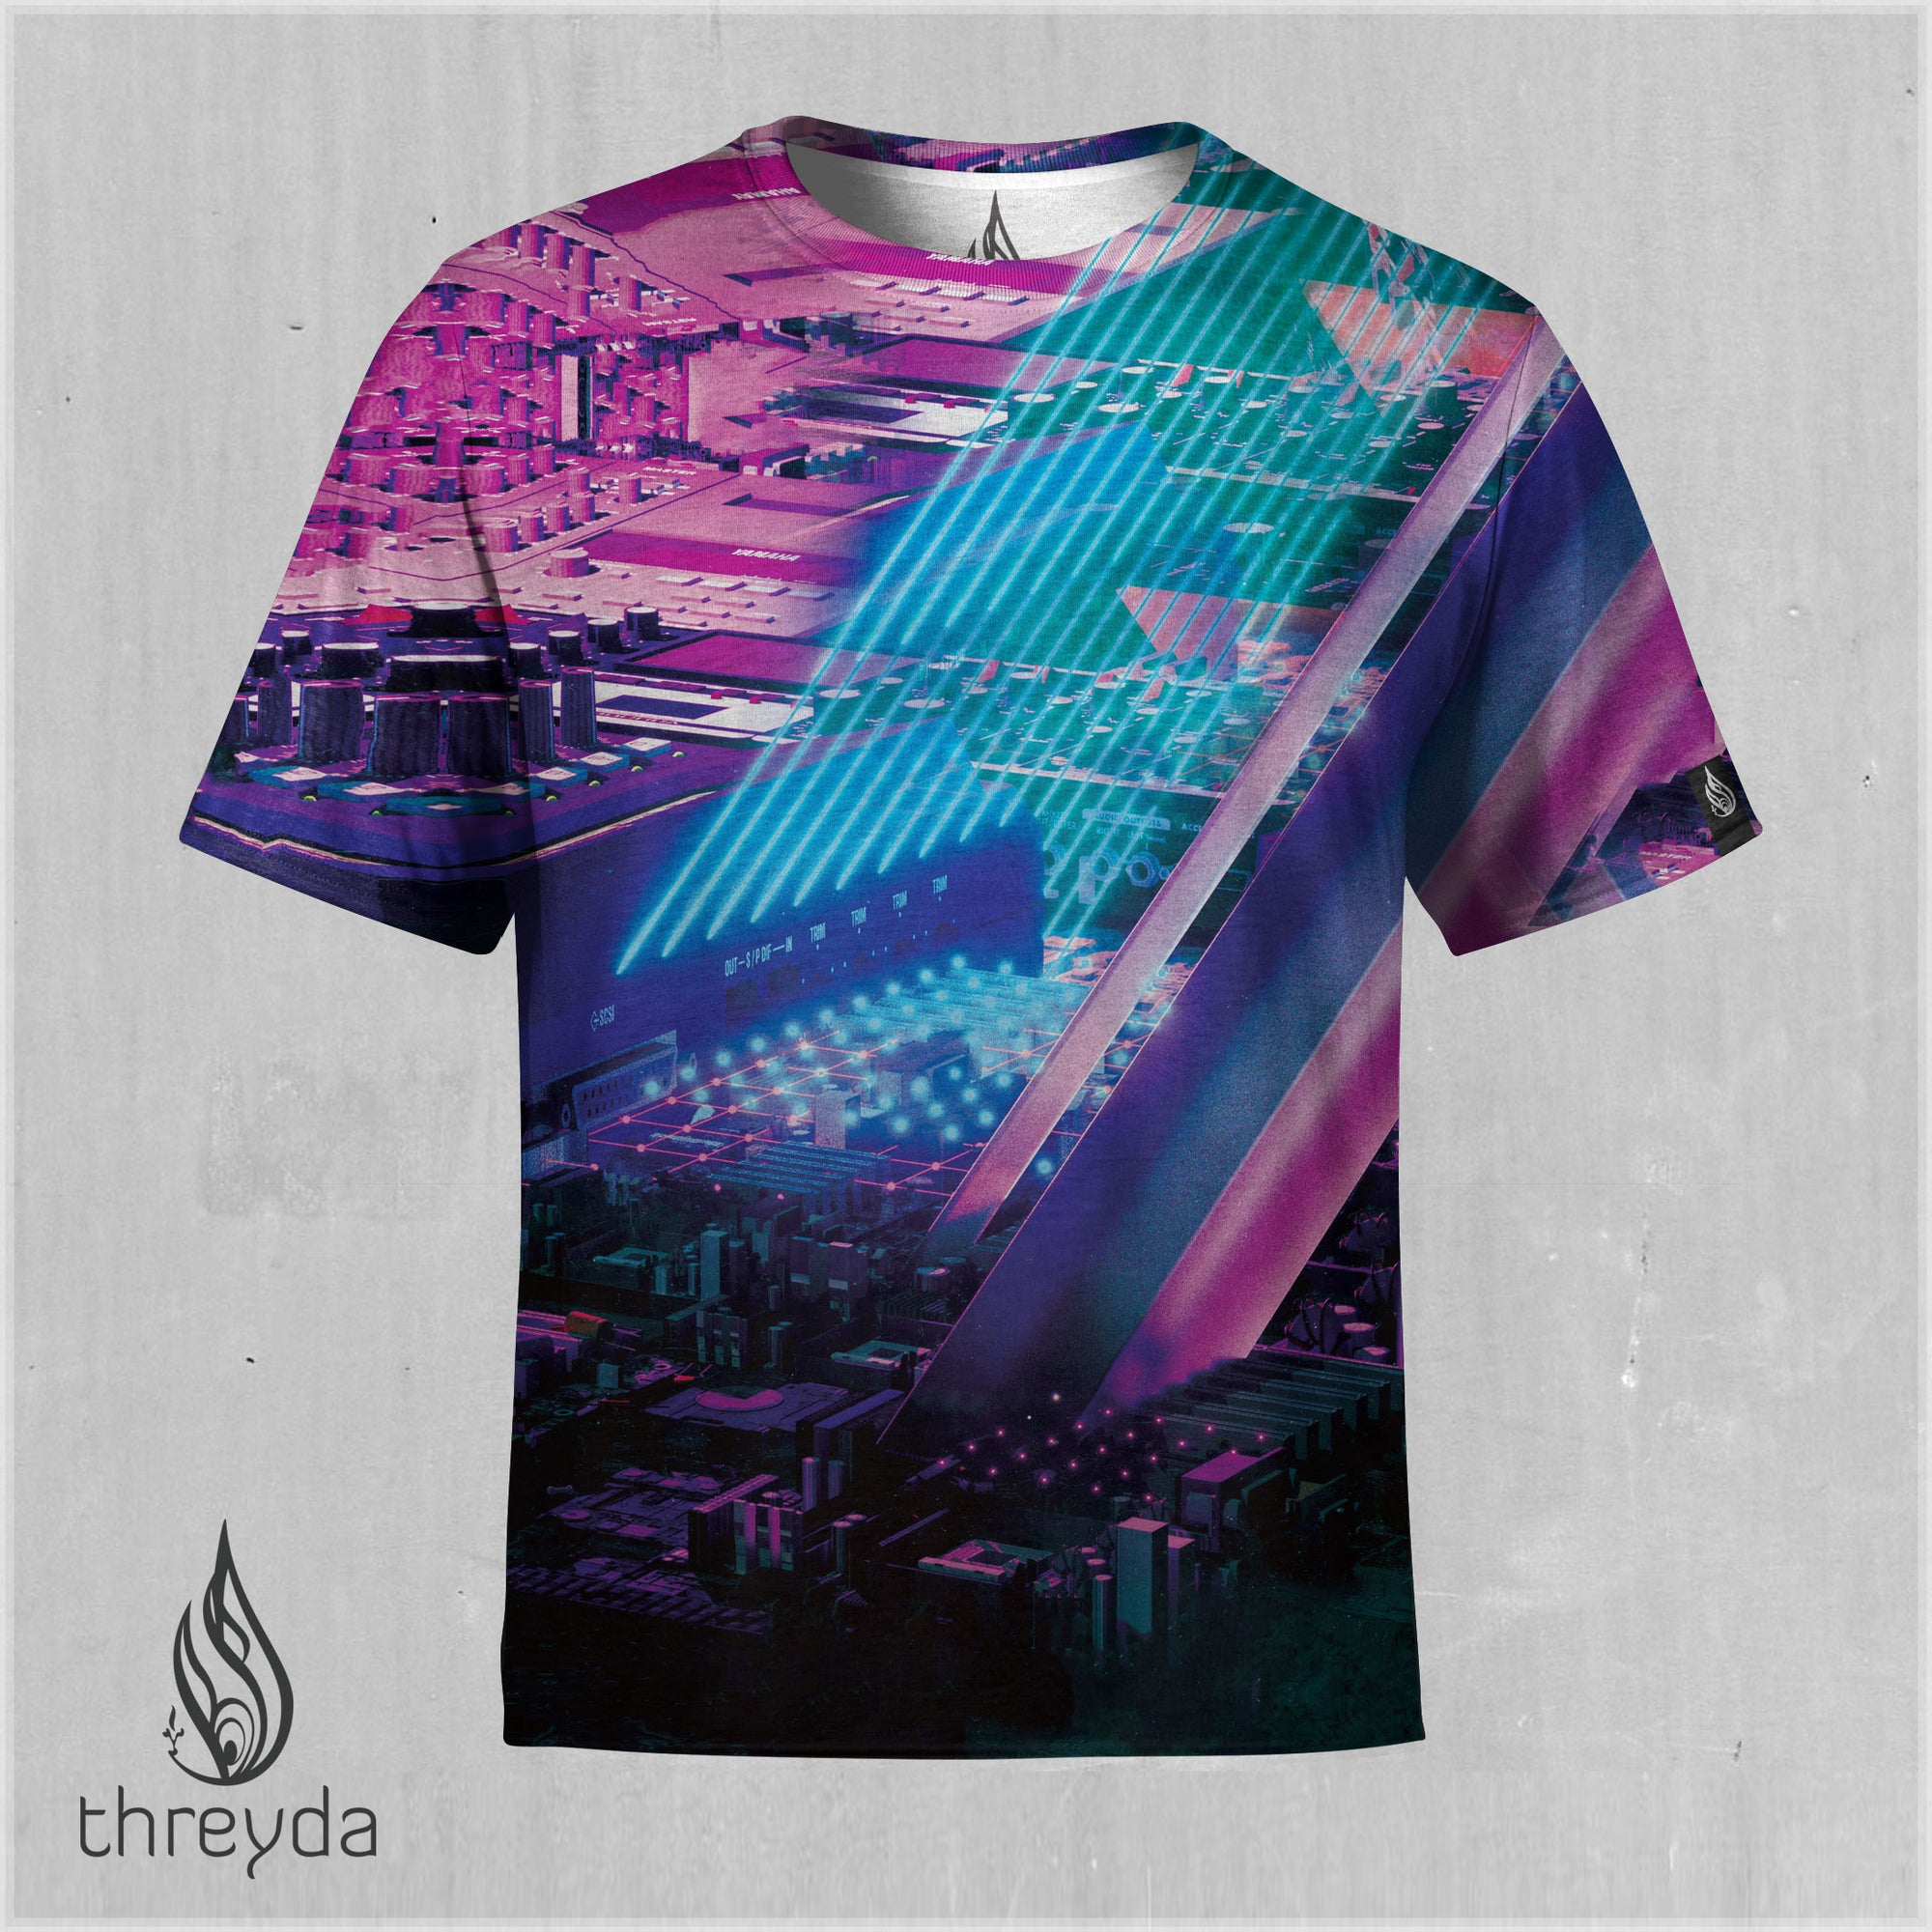 Neon Sublimation Tee by Beeple